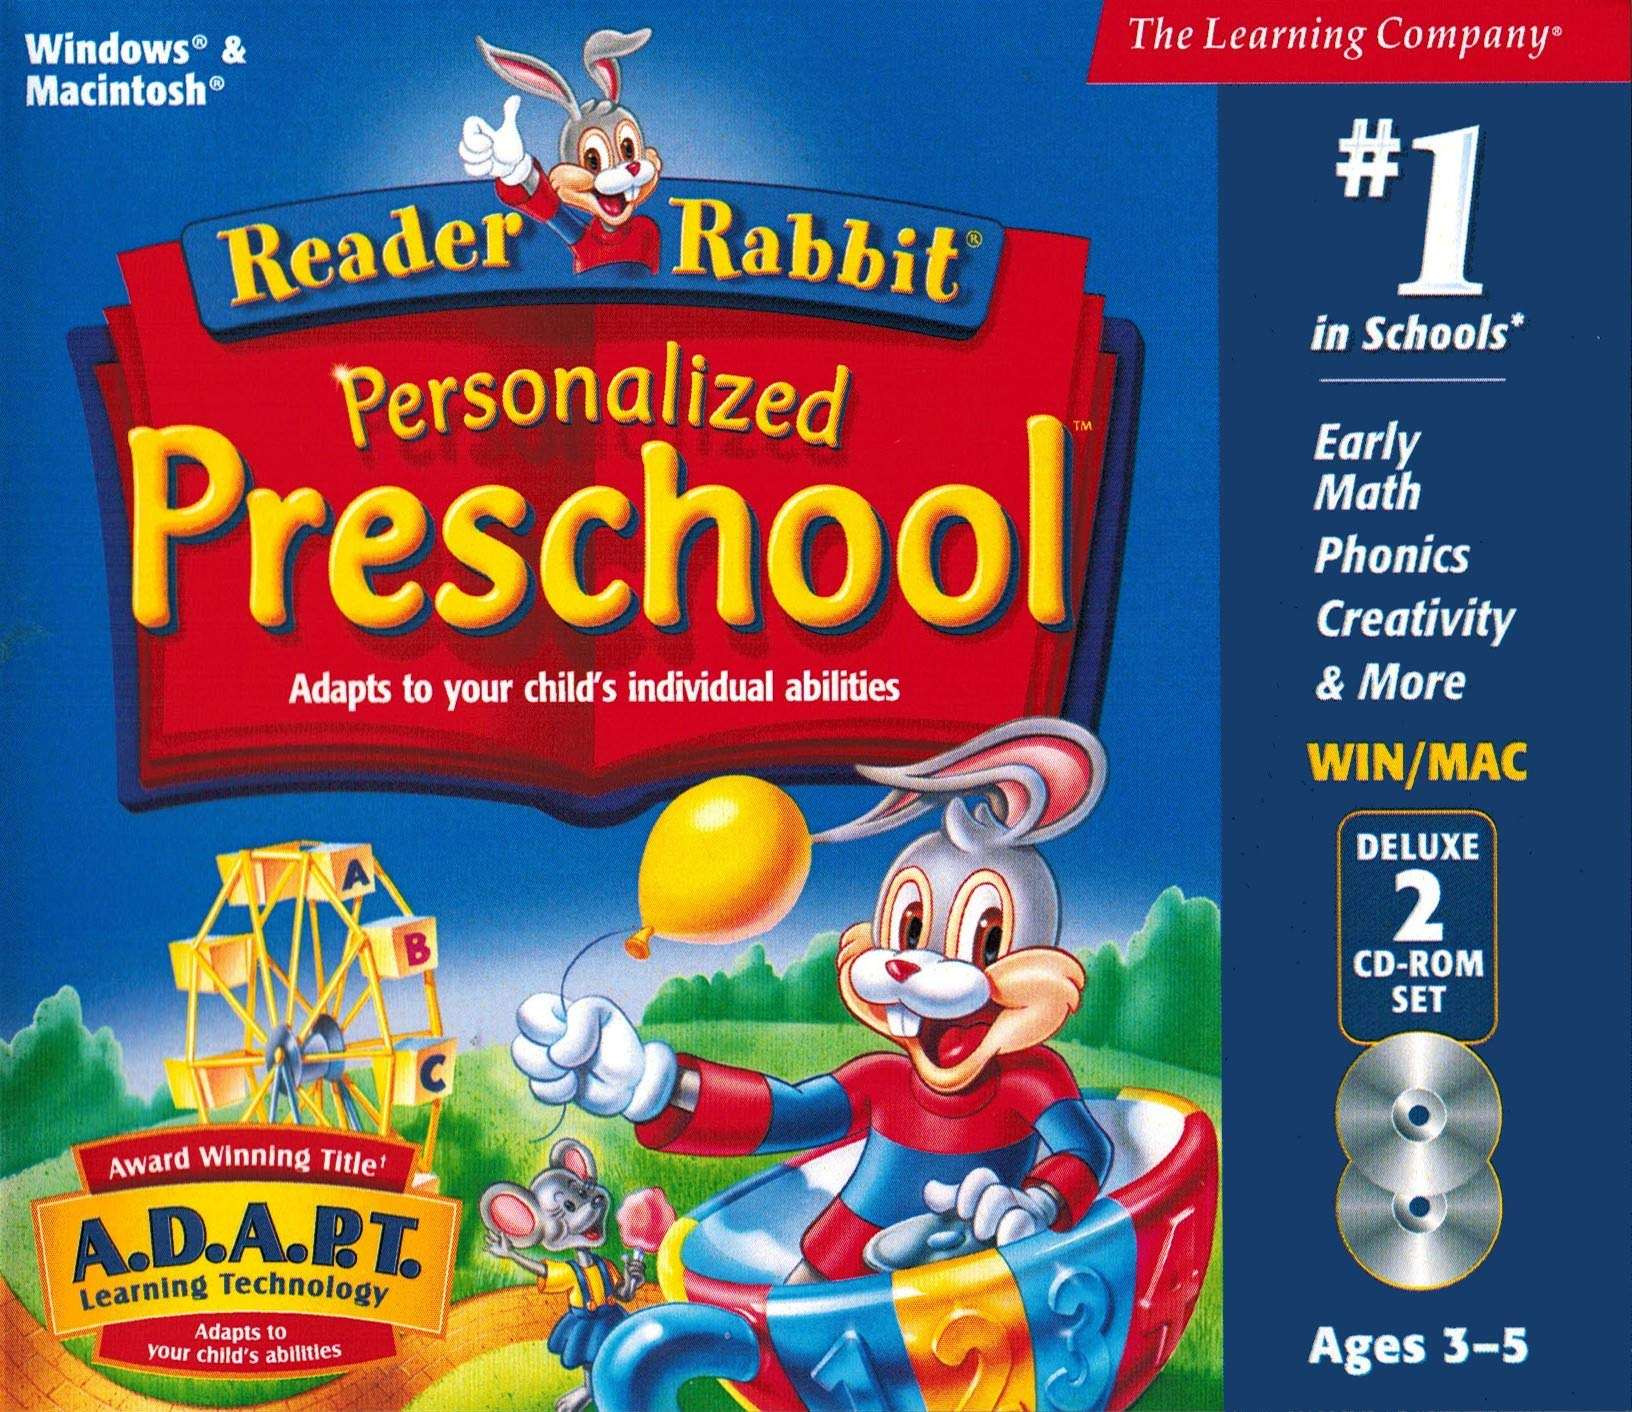 Reader Rabbit Personalized Preschool Deluxe (2 CD-ROM Set) (Compatible with Windows XP / Vista ONLY) by The Learning Company